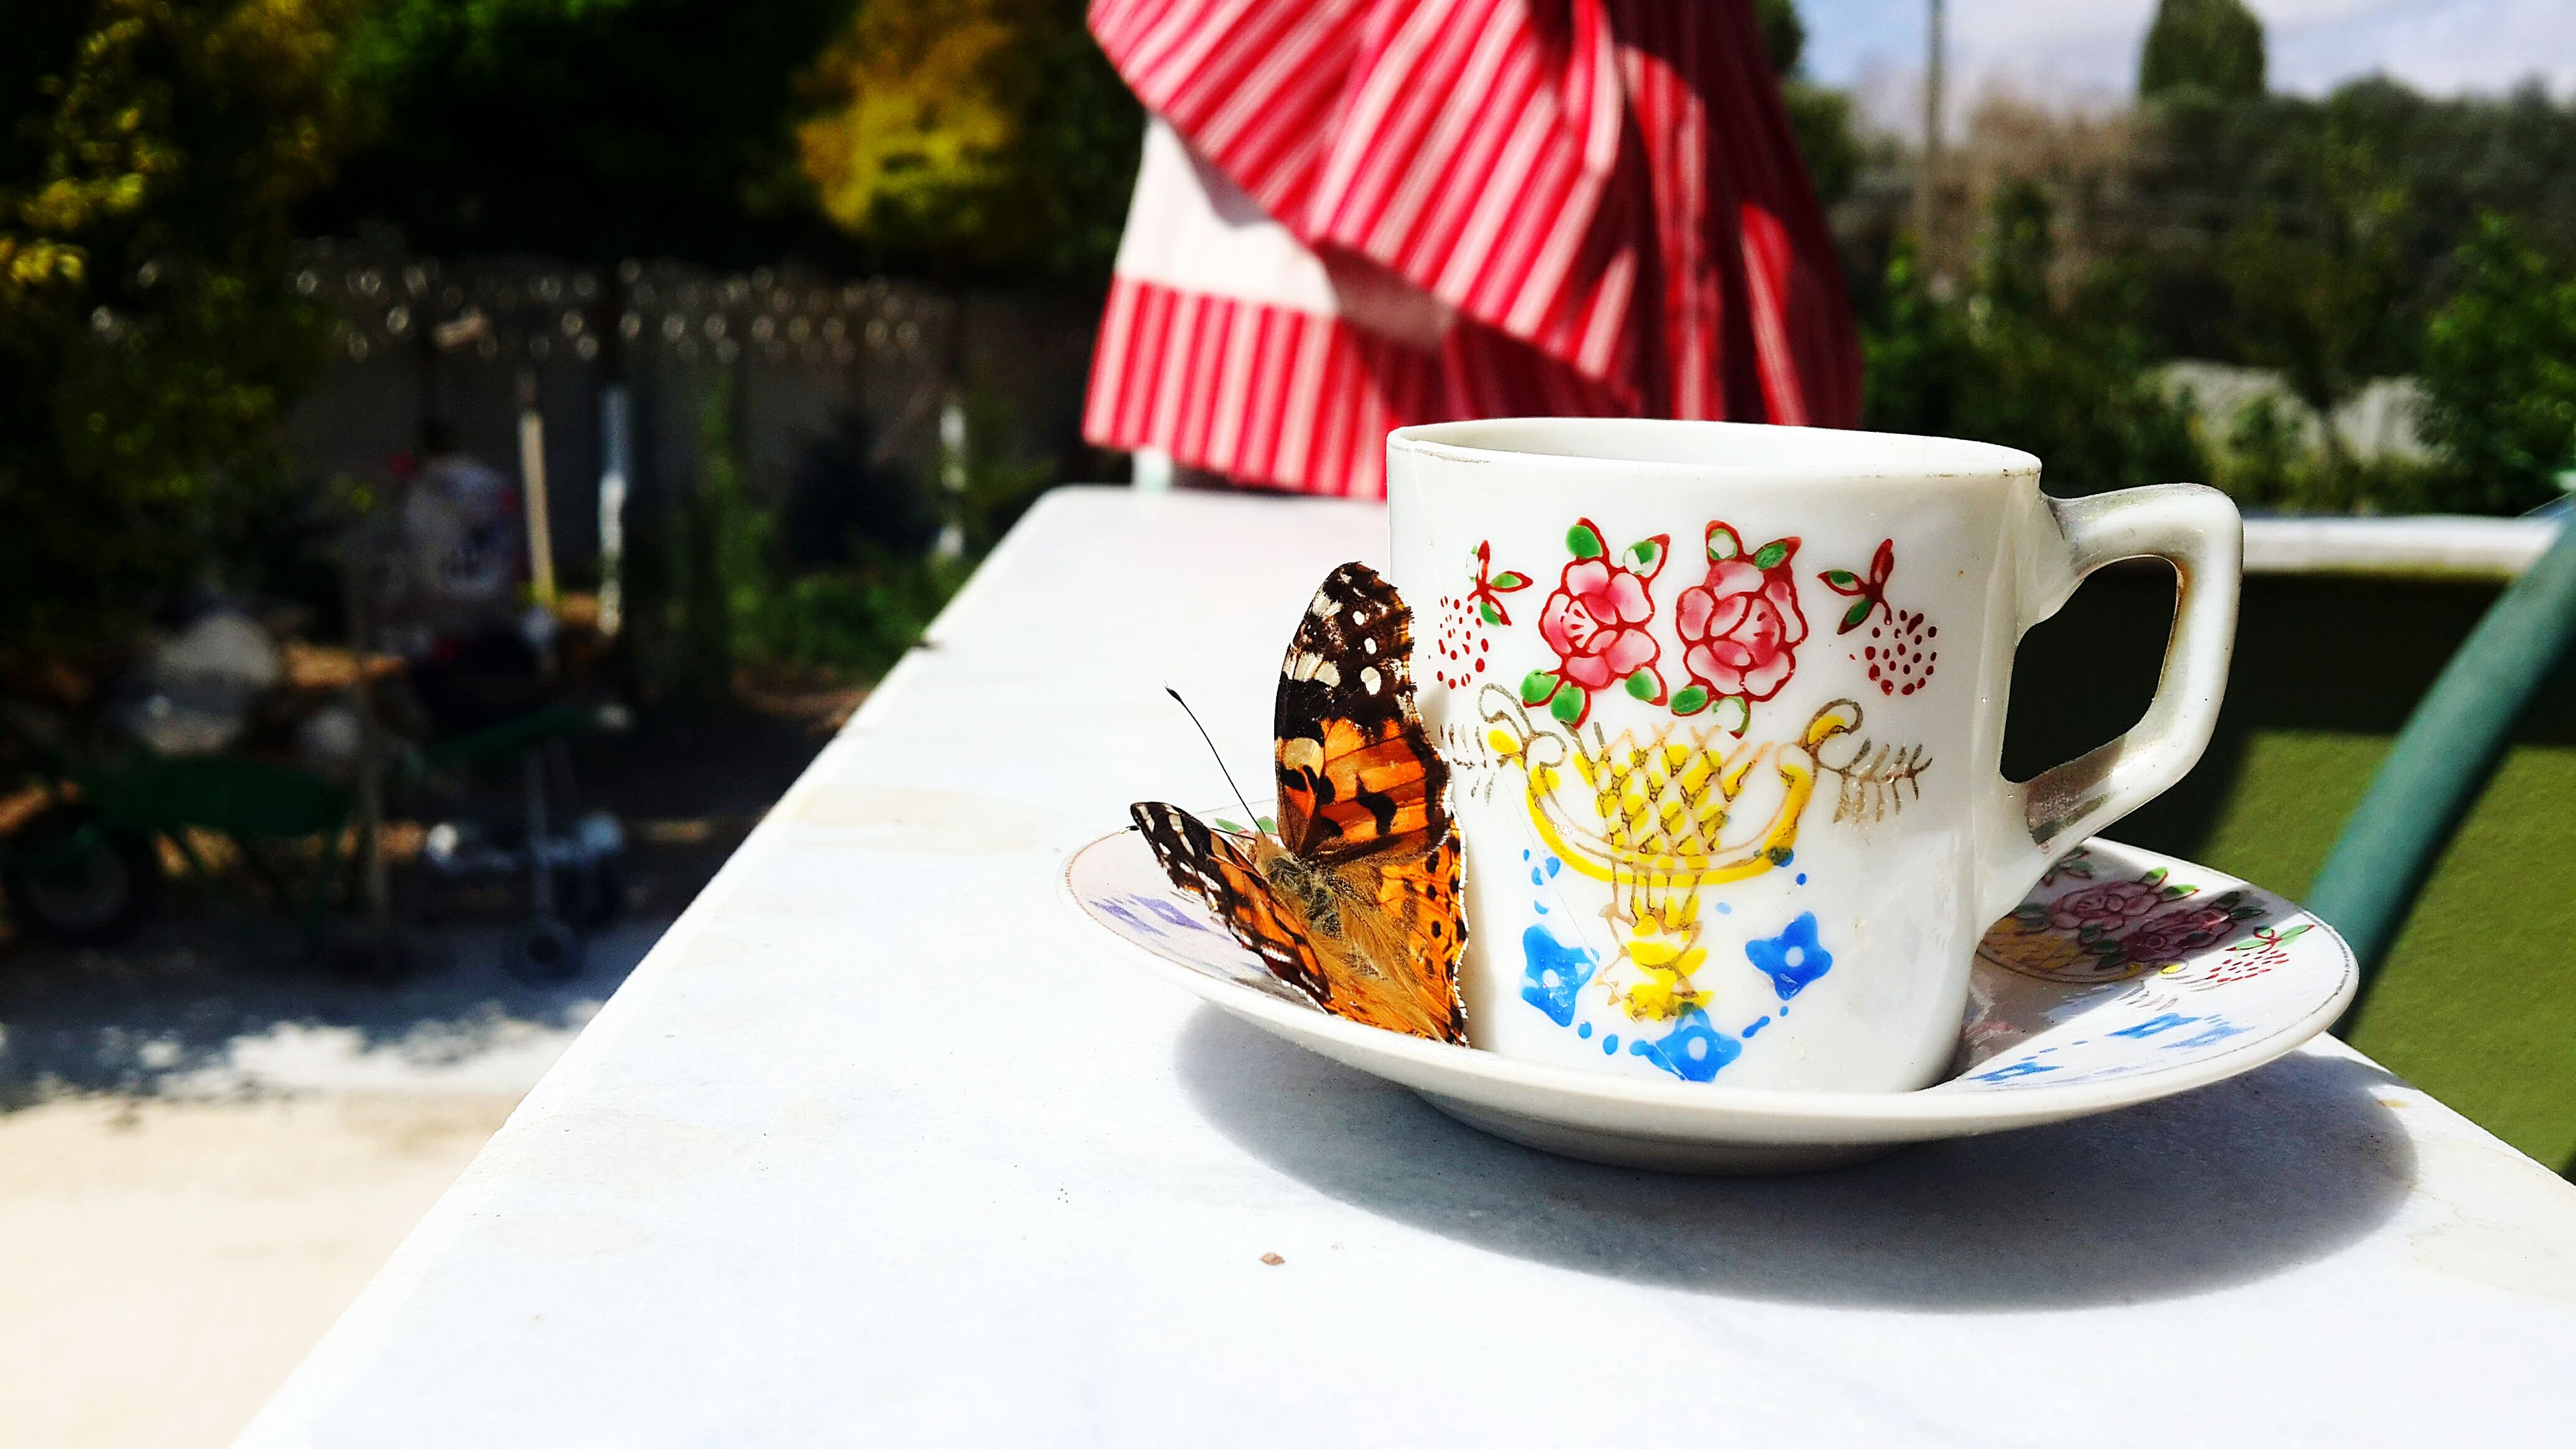 Garden Wievfrommywindow Butterfly Coffee Old Coffee Cup Refreshment Holiday Relaxing Moments